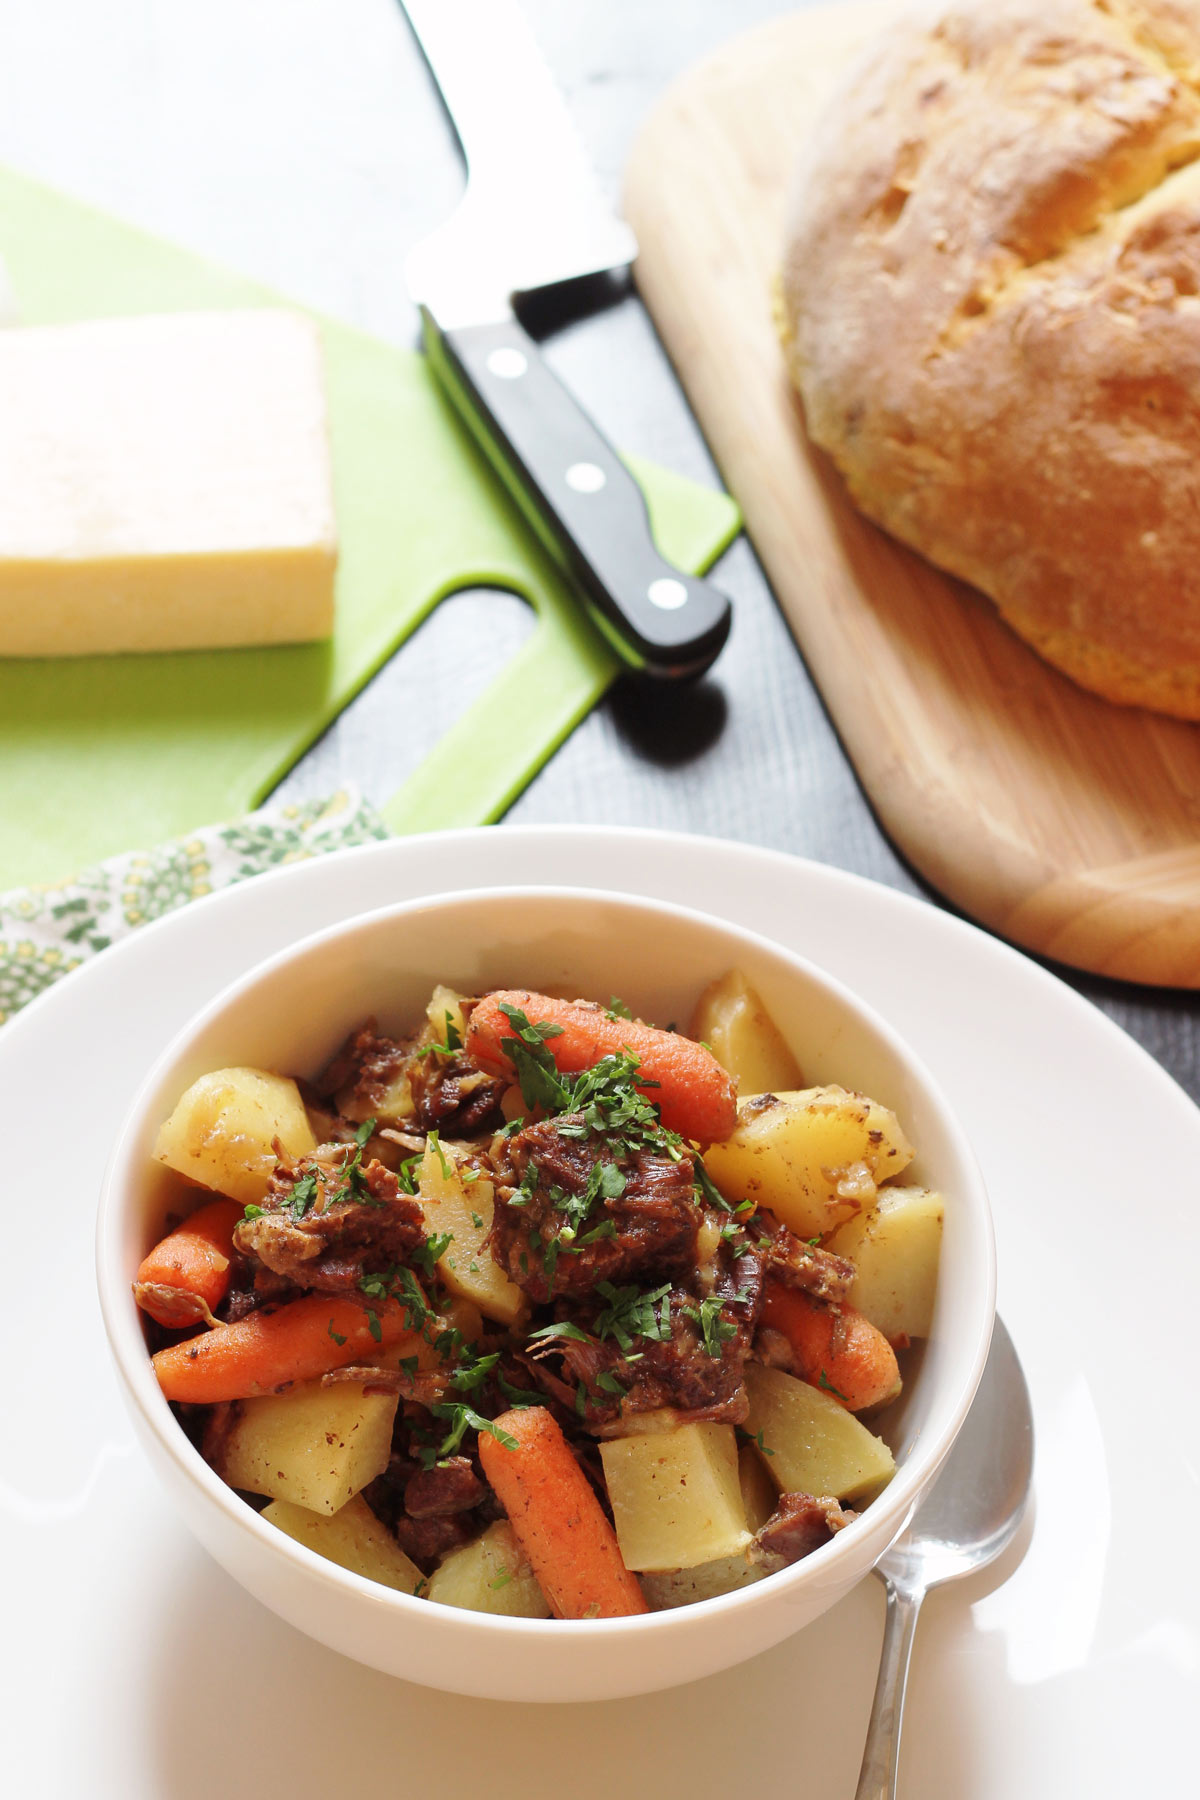 bowl of stew on table with bread and cheese